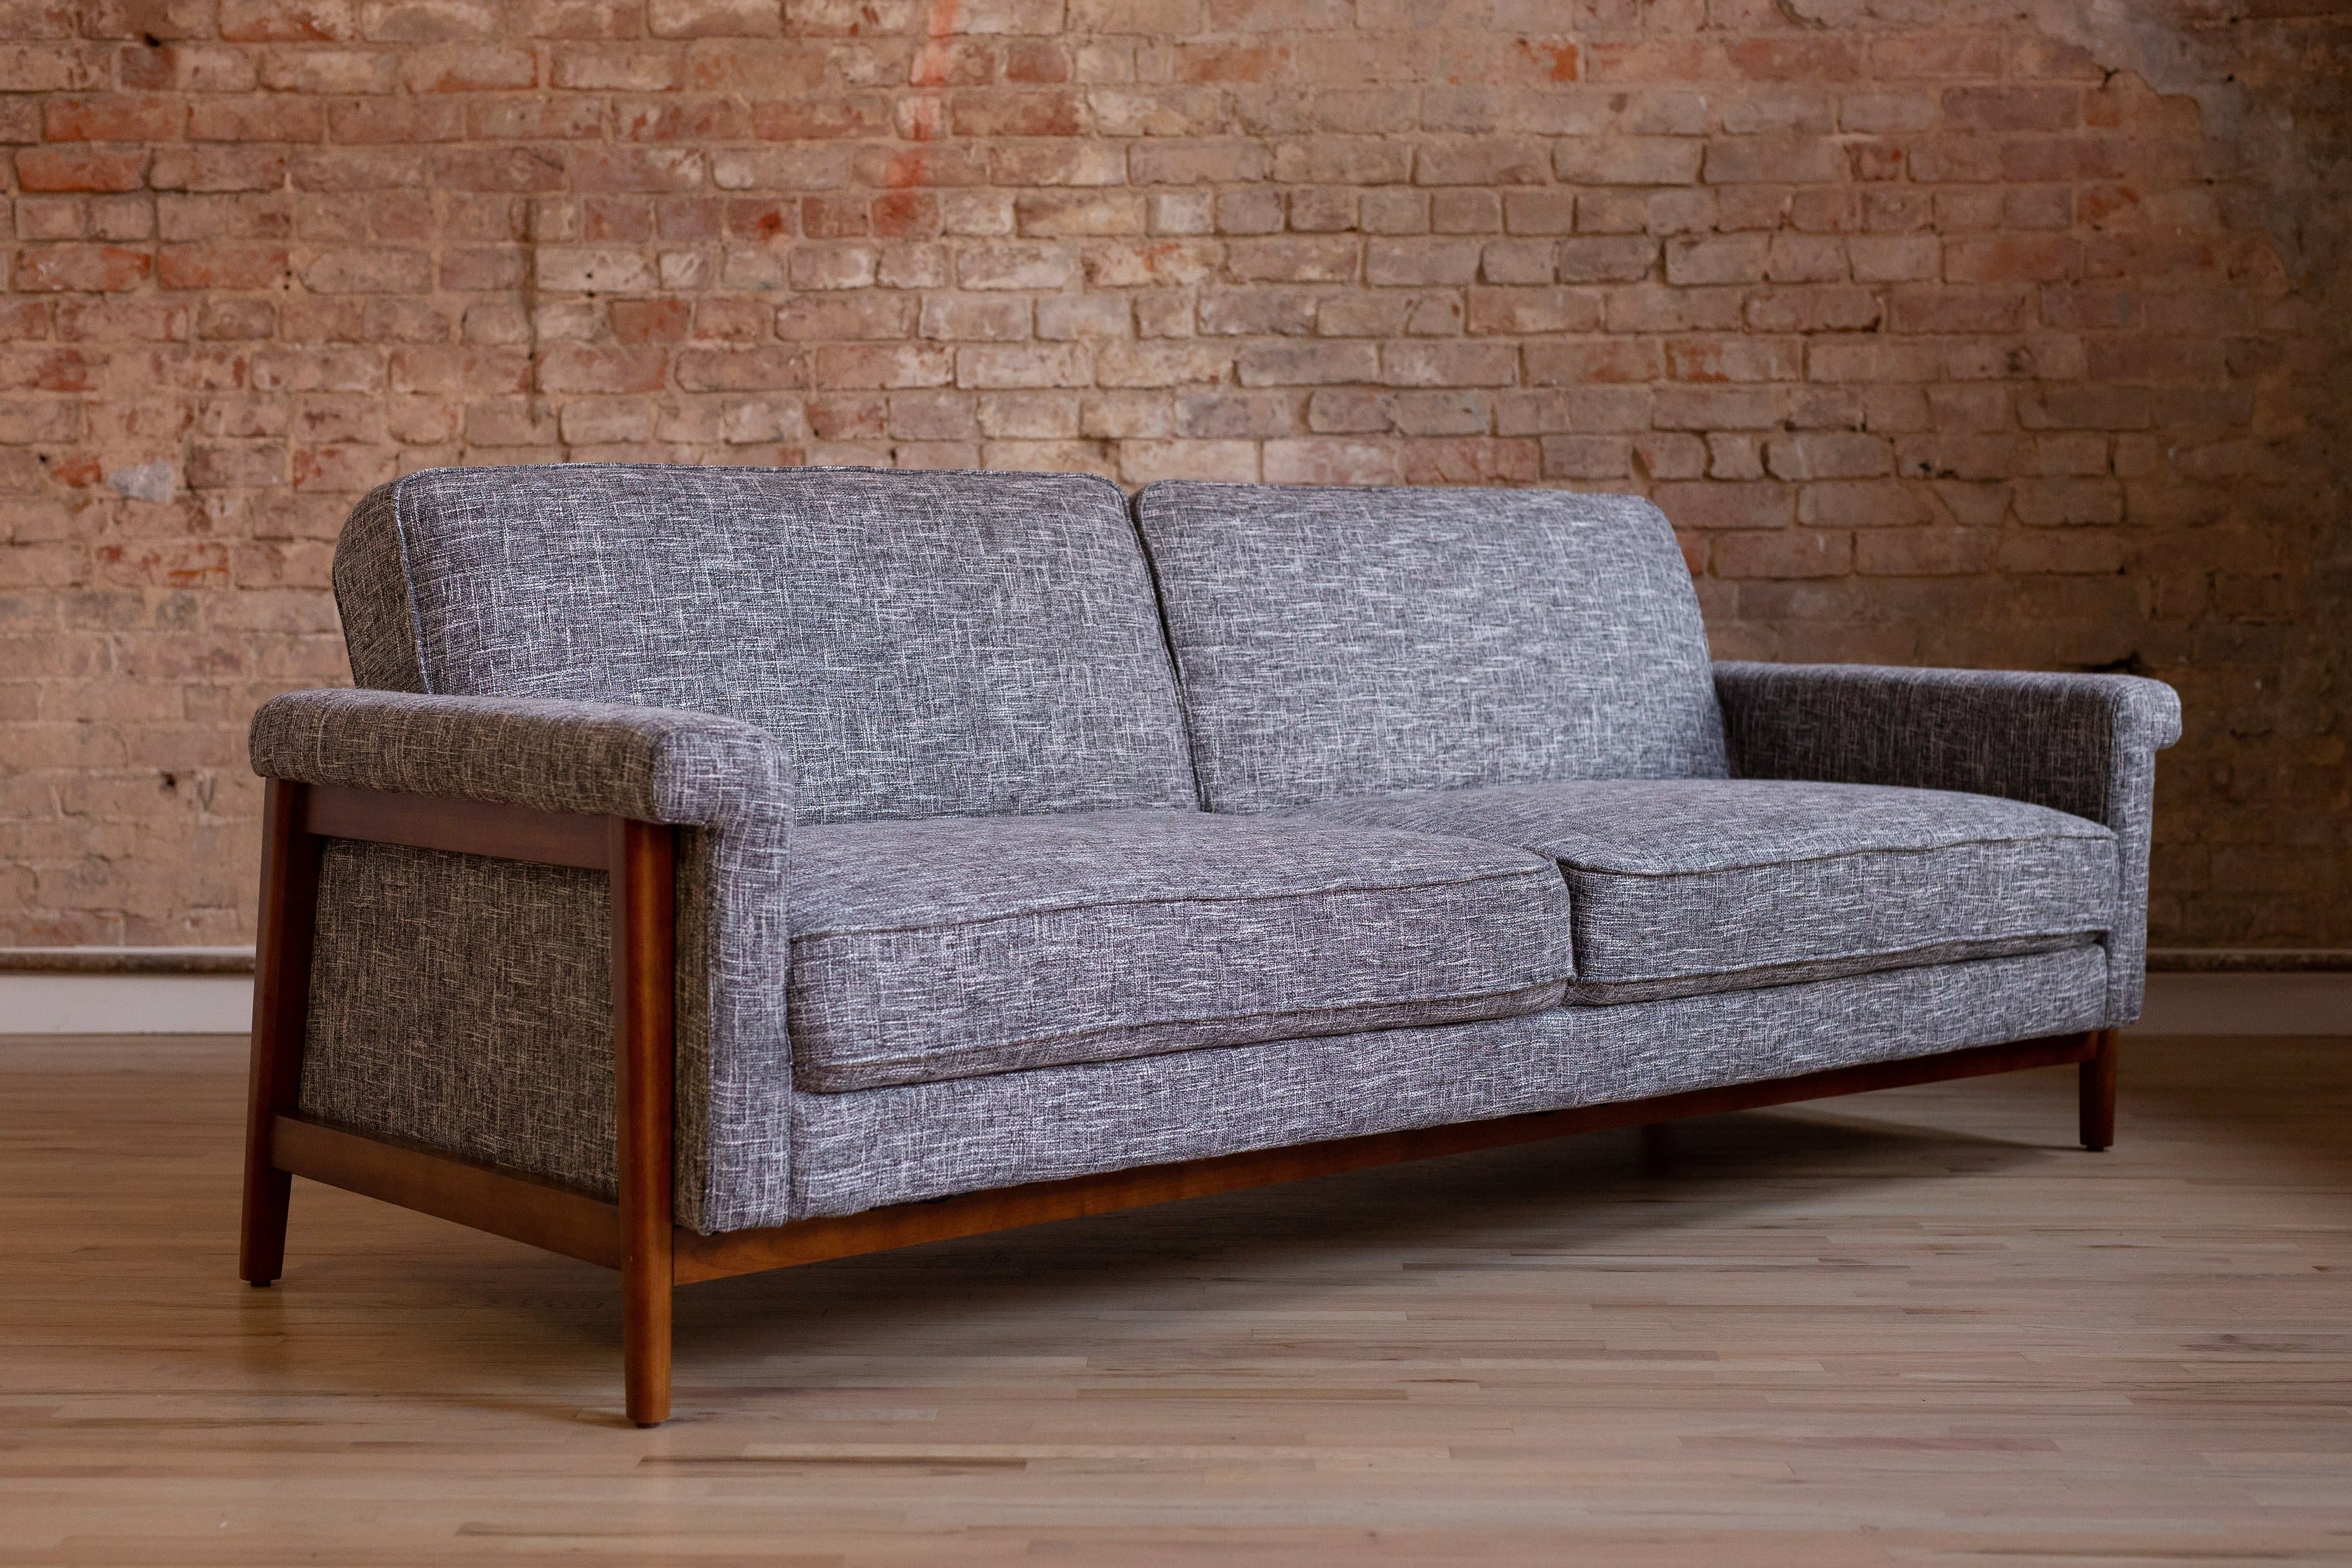 Sleeper Sofa.Ashbury Sleeper Sofa Edloe Finch Furniture Co